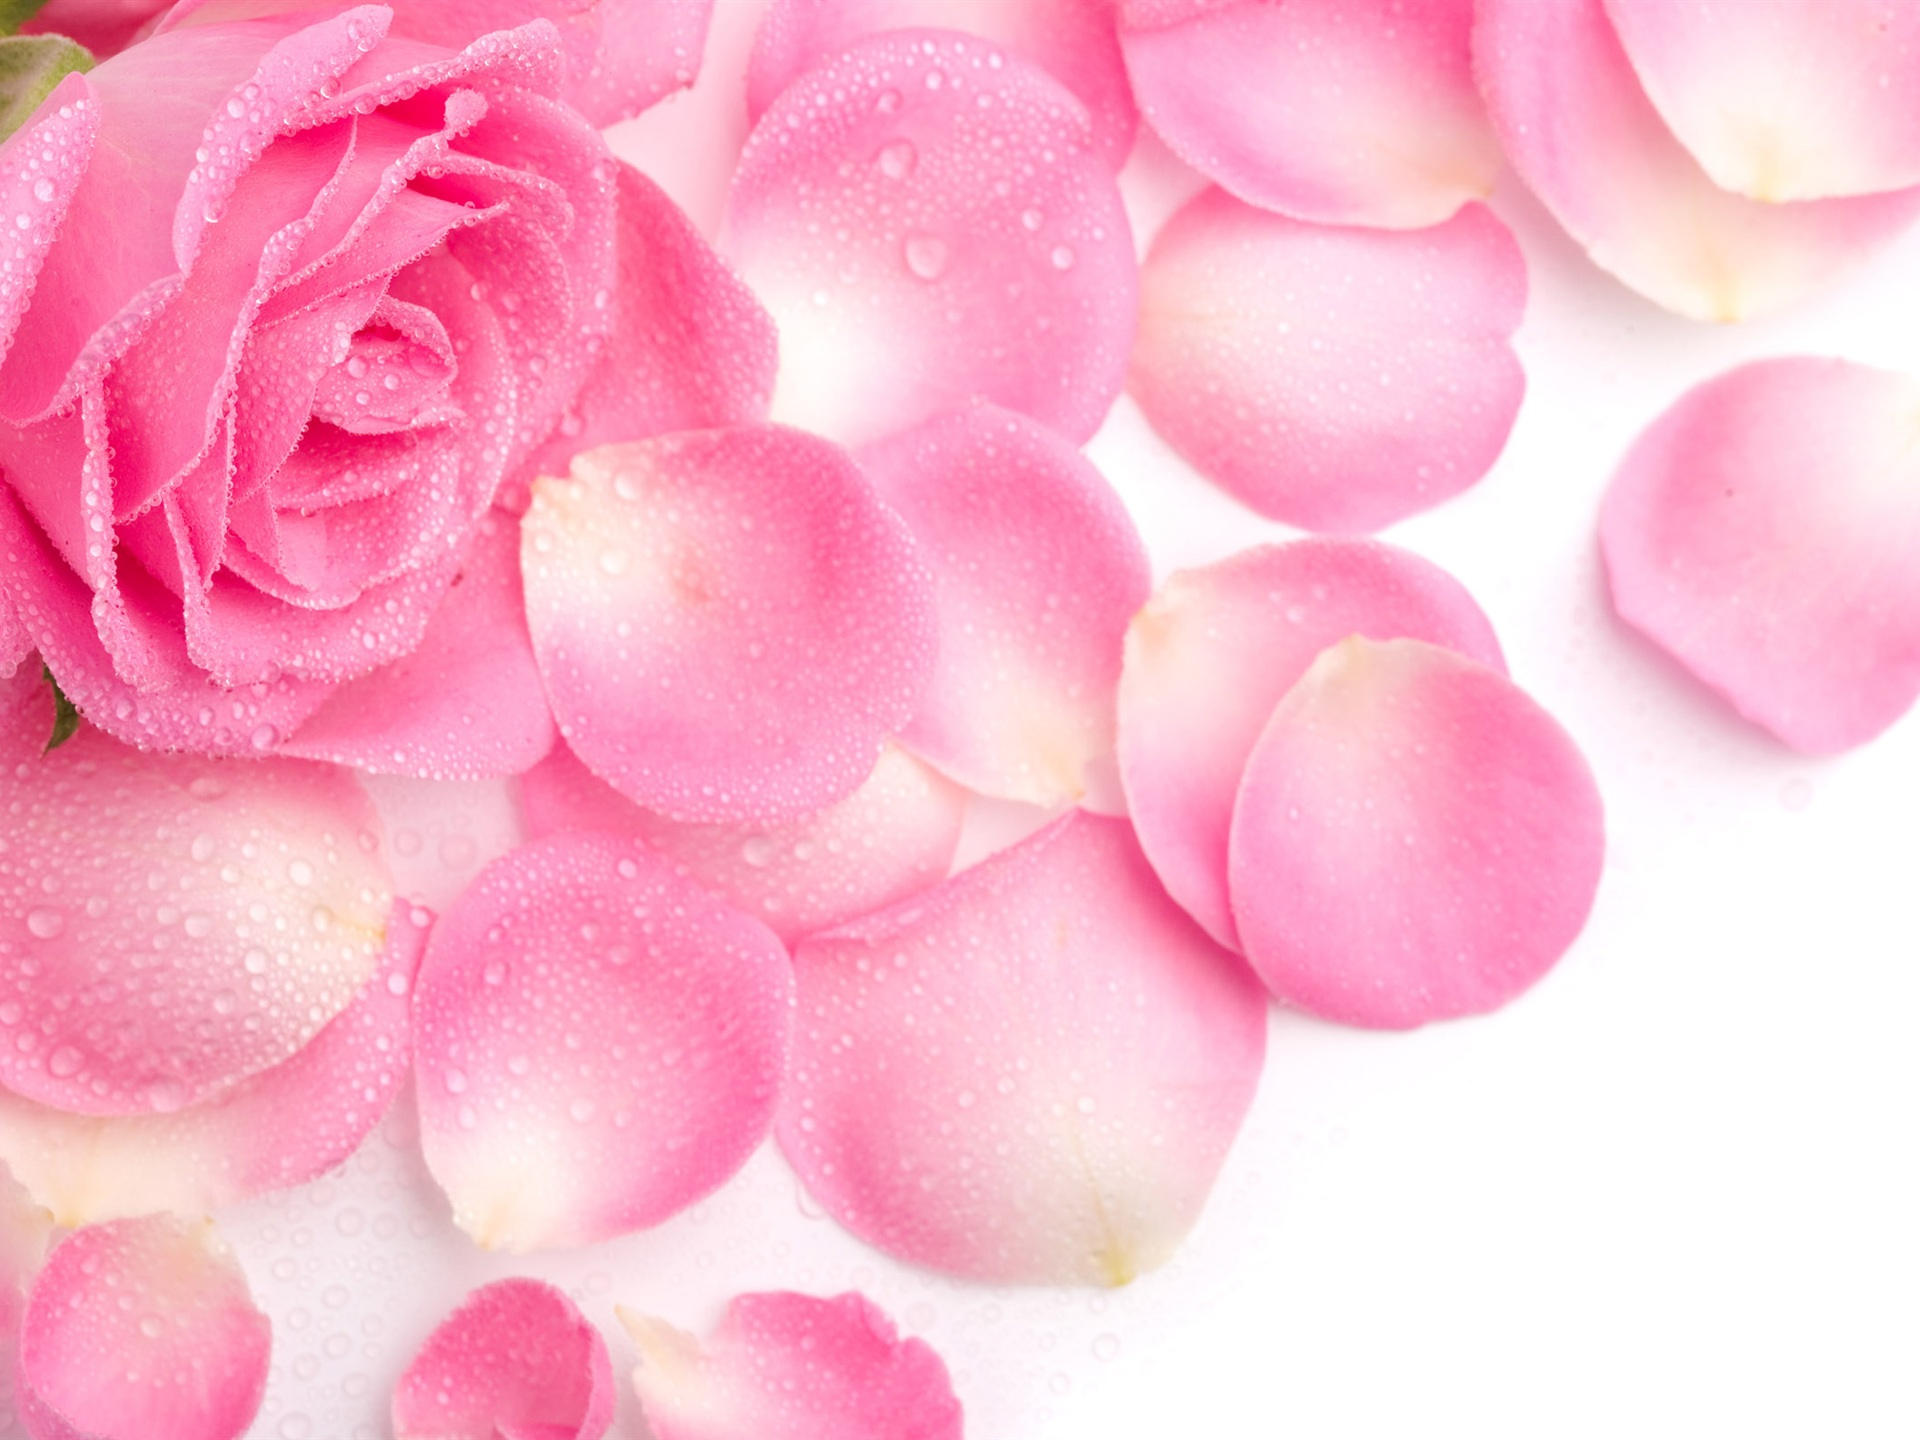 Wallpaper Pink Rose Petals 2560x1600 HD Picture, Image